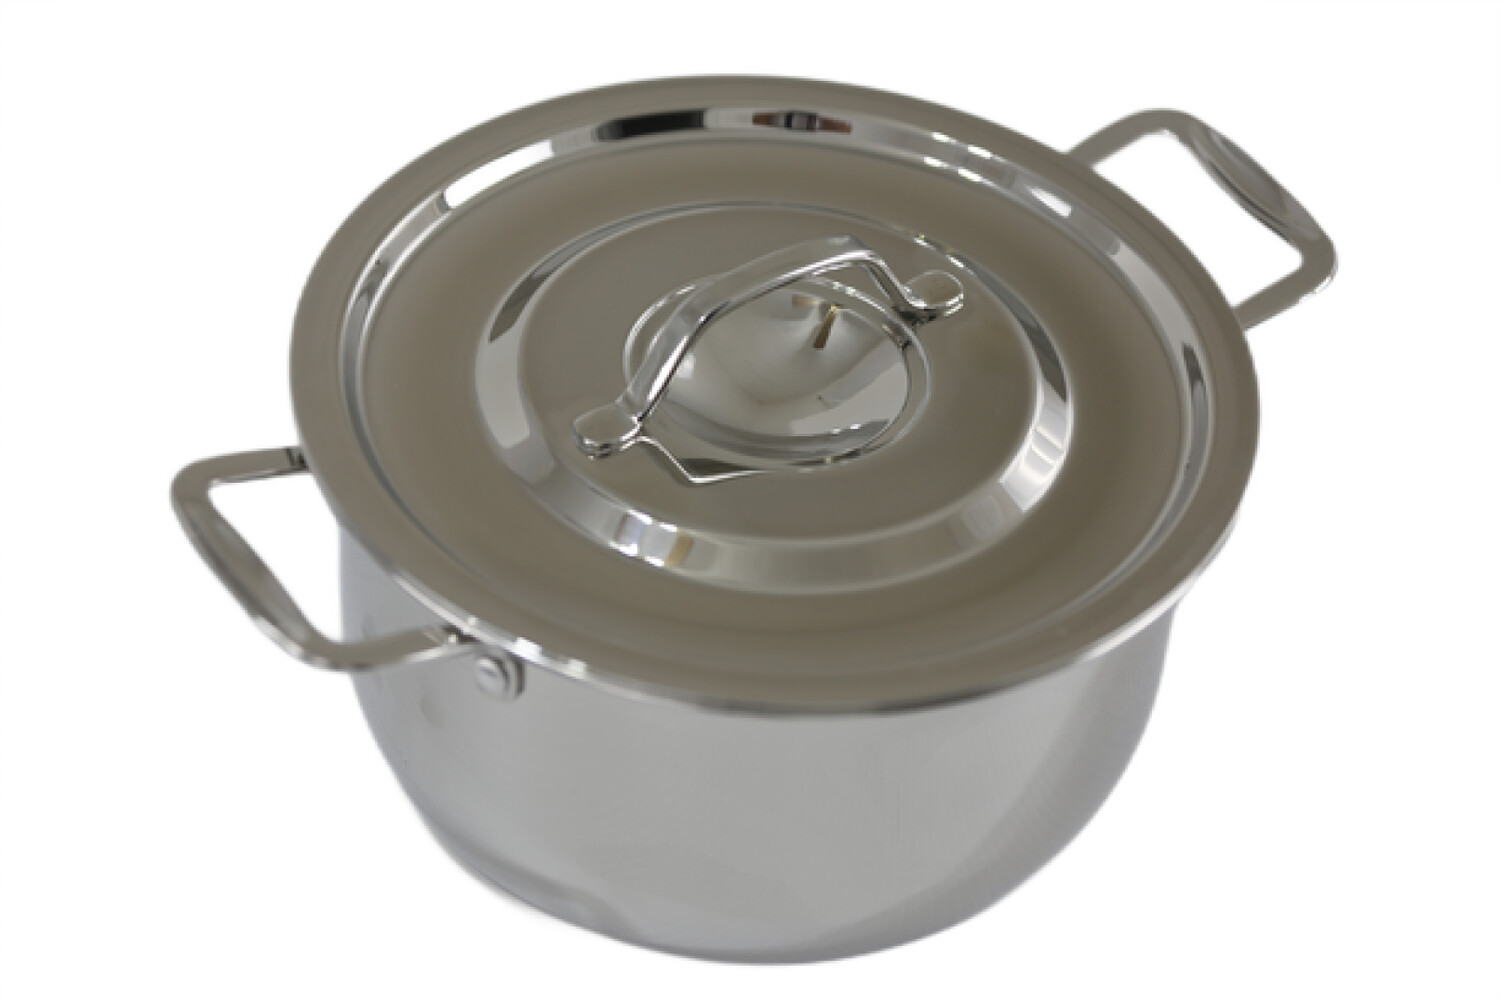 Stainless Steel Sauce Pot with Stainless Steel Cover